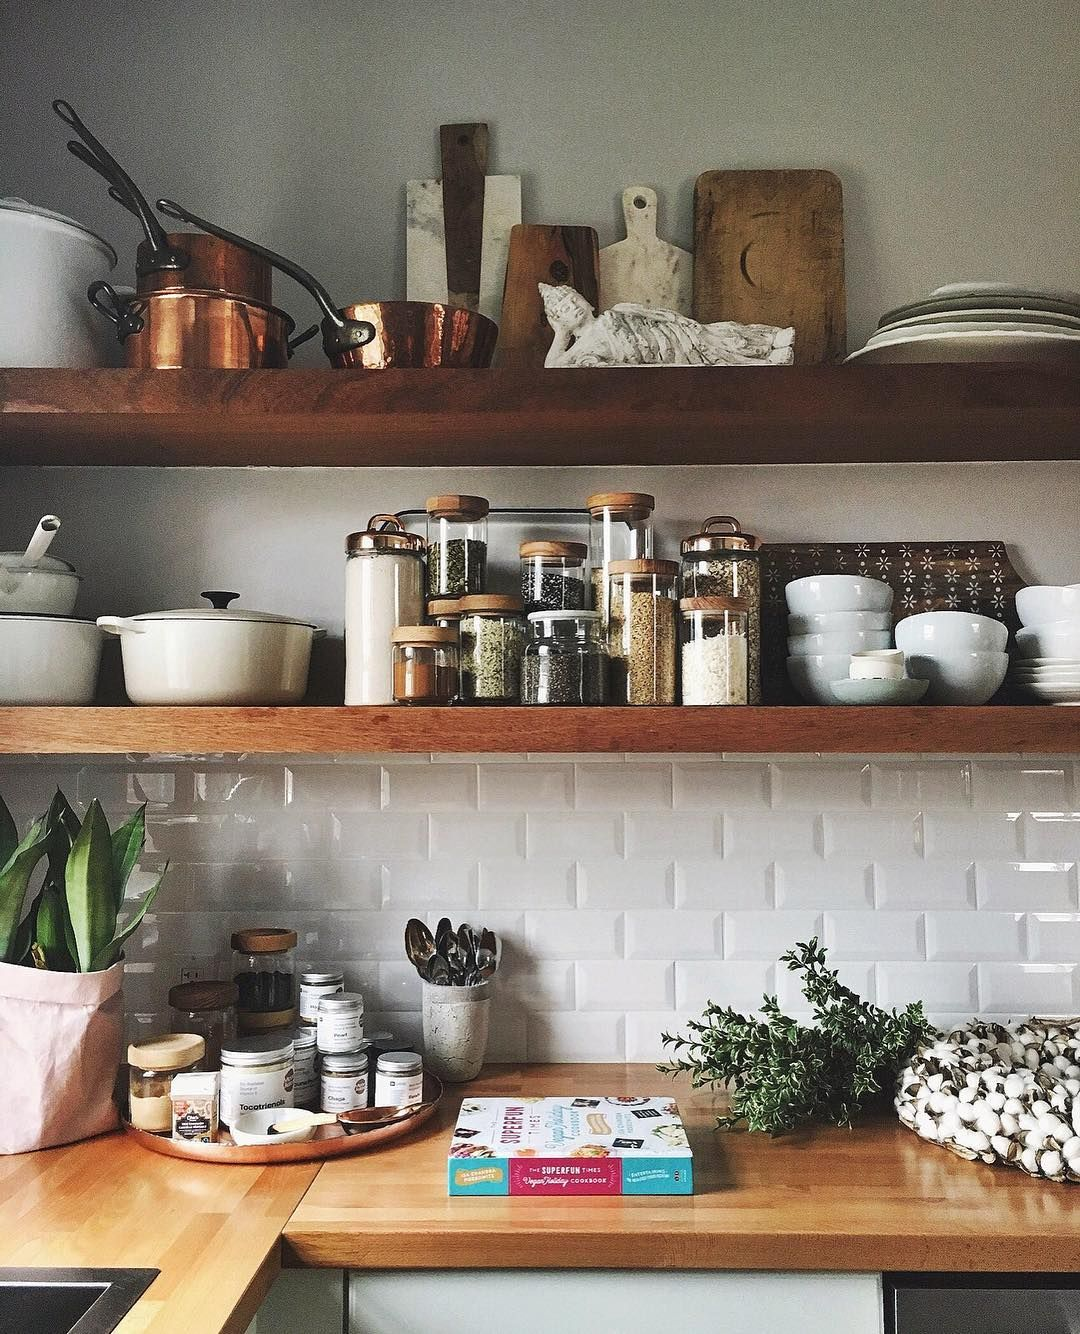 Messy Commercial Kitchen: Via @thefirstmess On Instagram